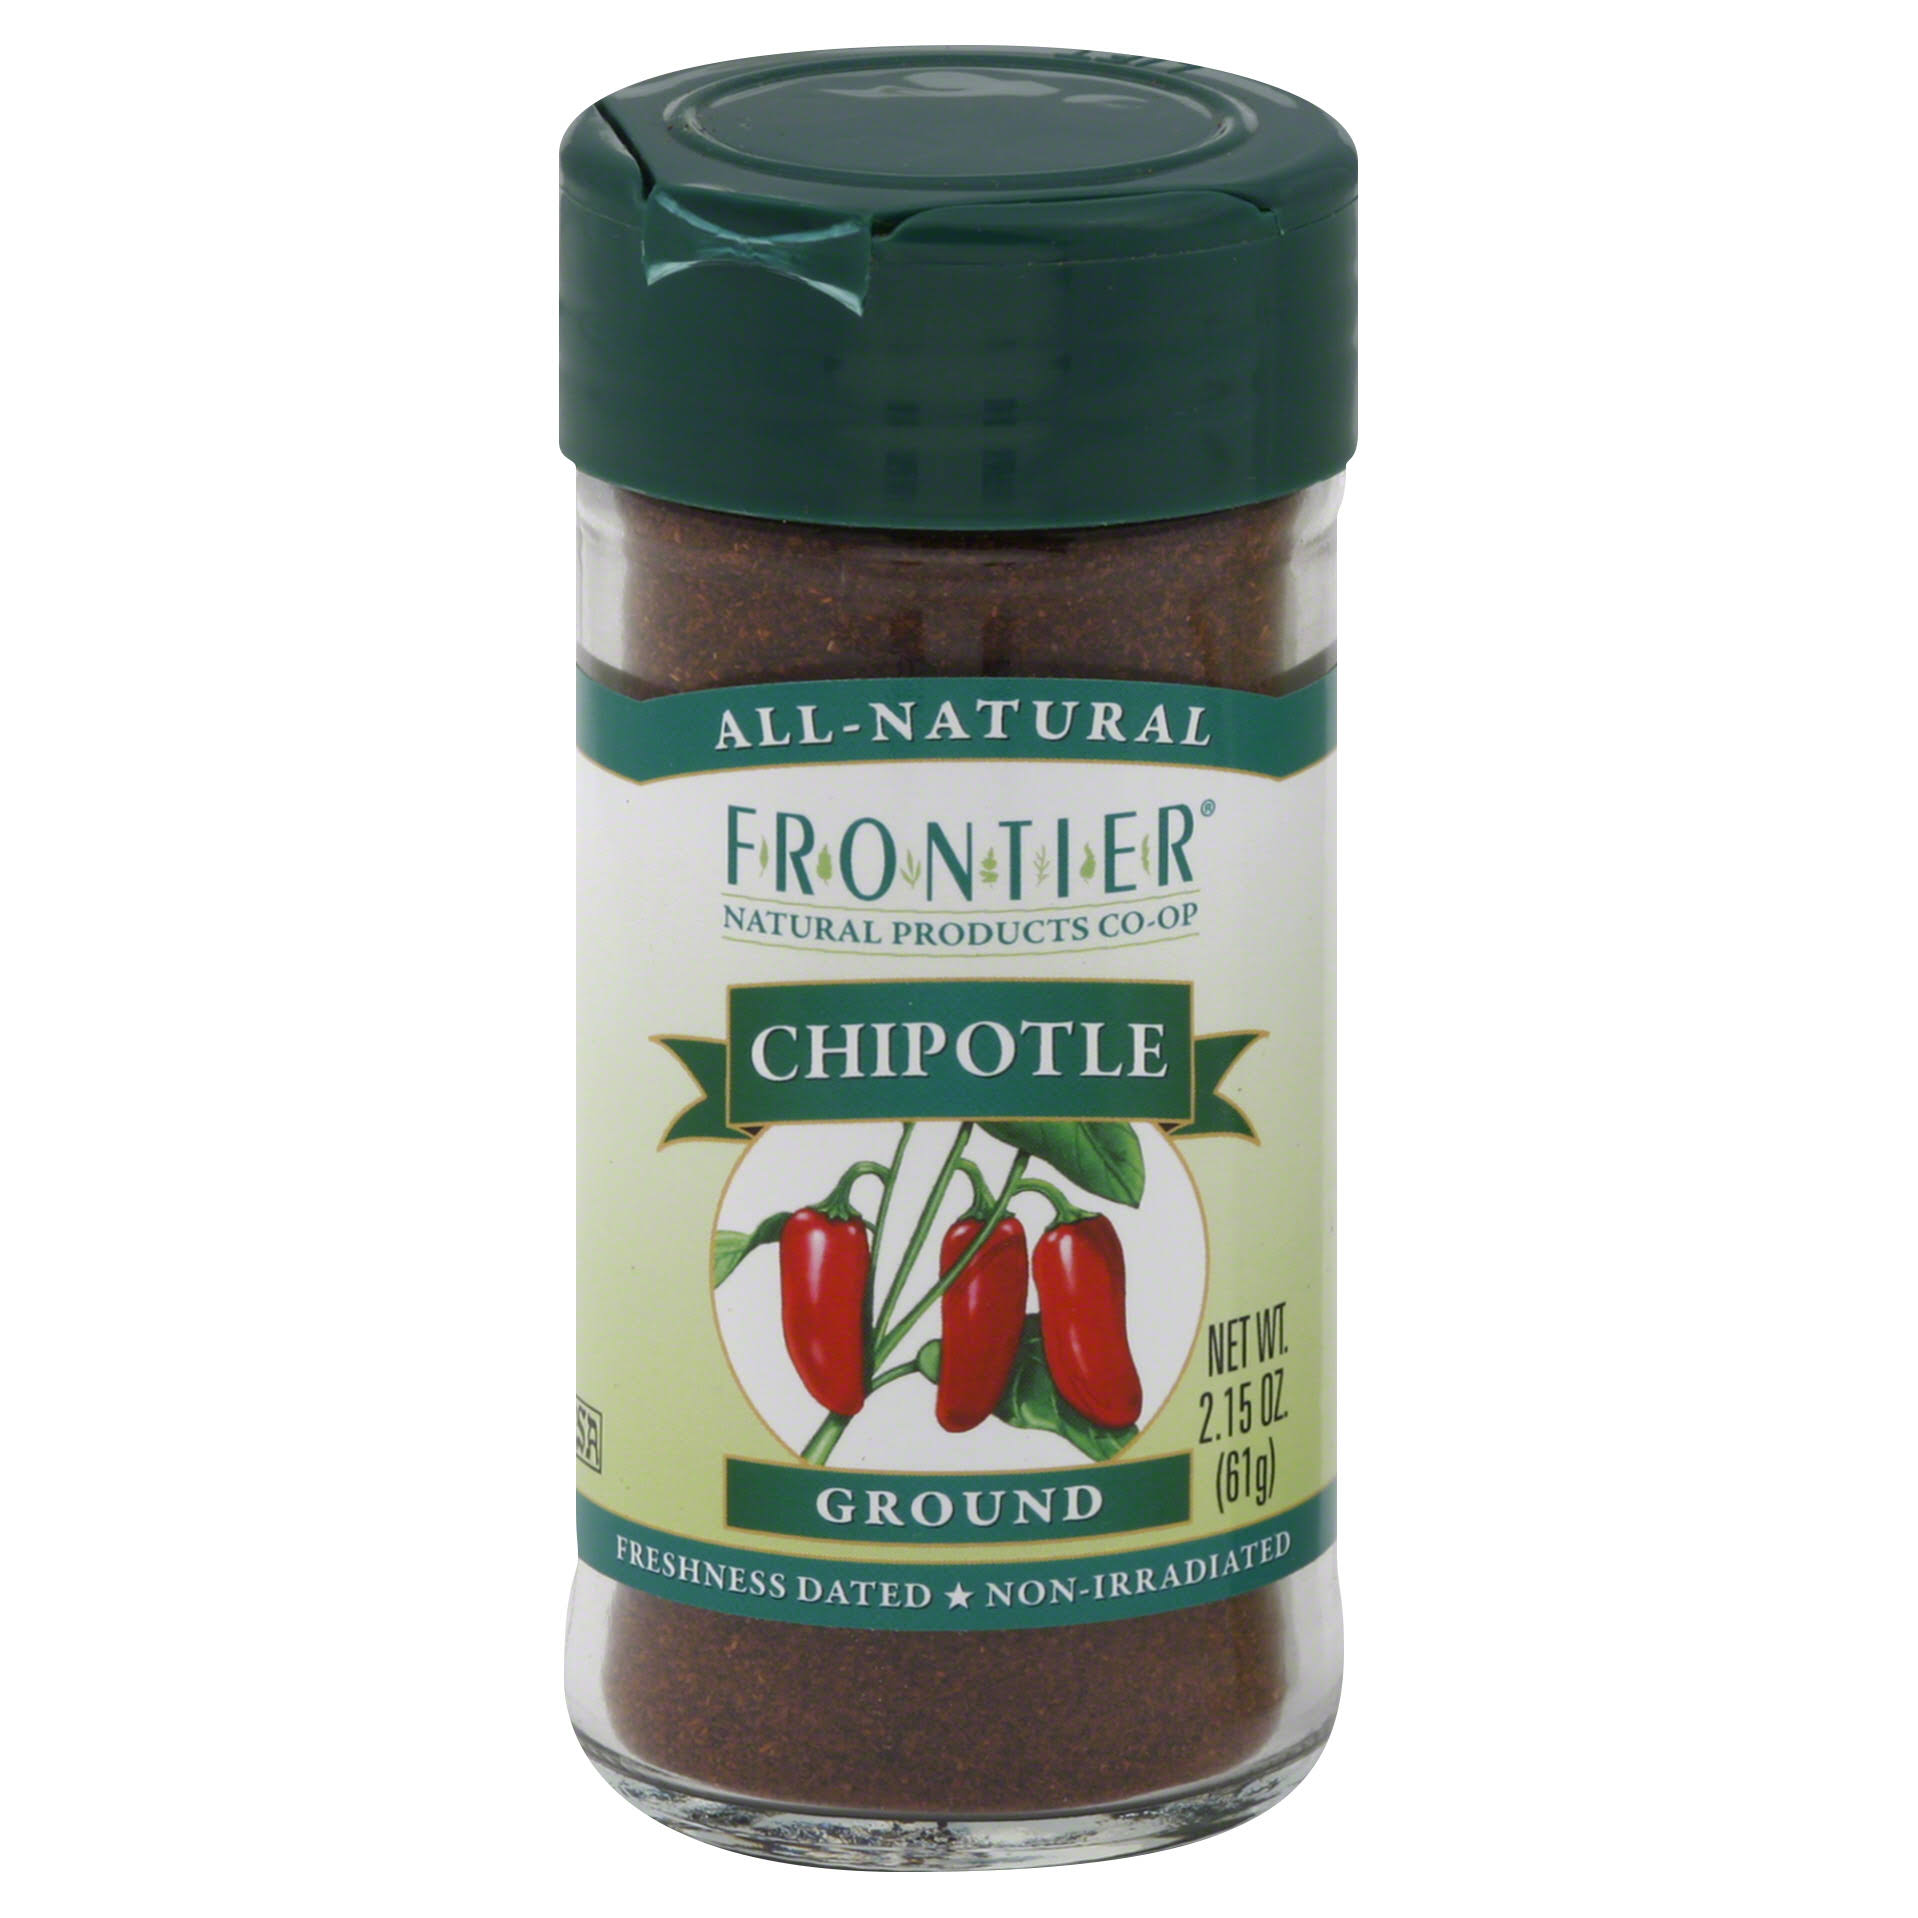 Frontier Ground Chipotle - 2.15oz